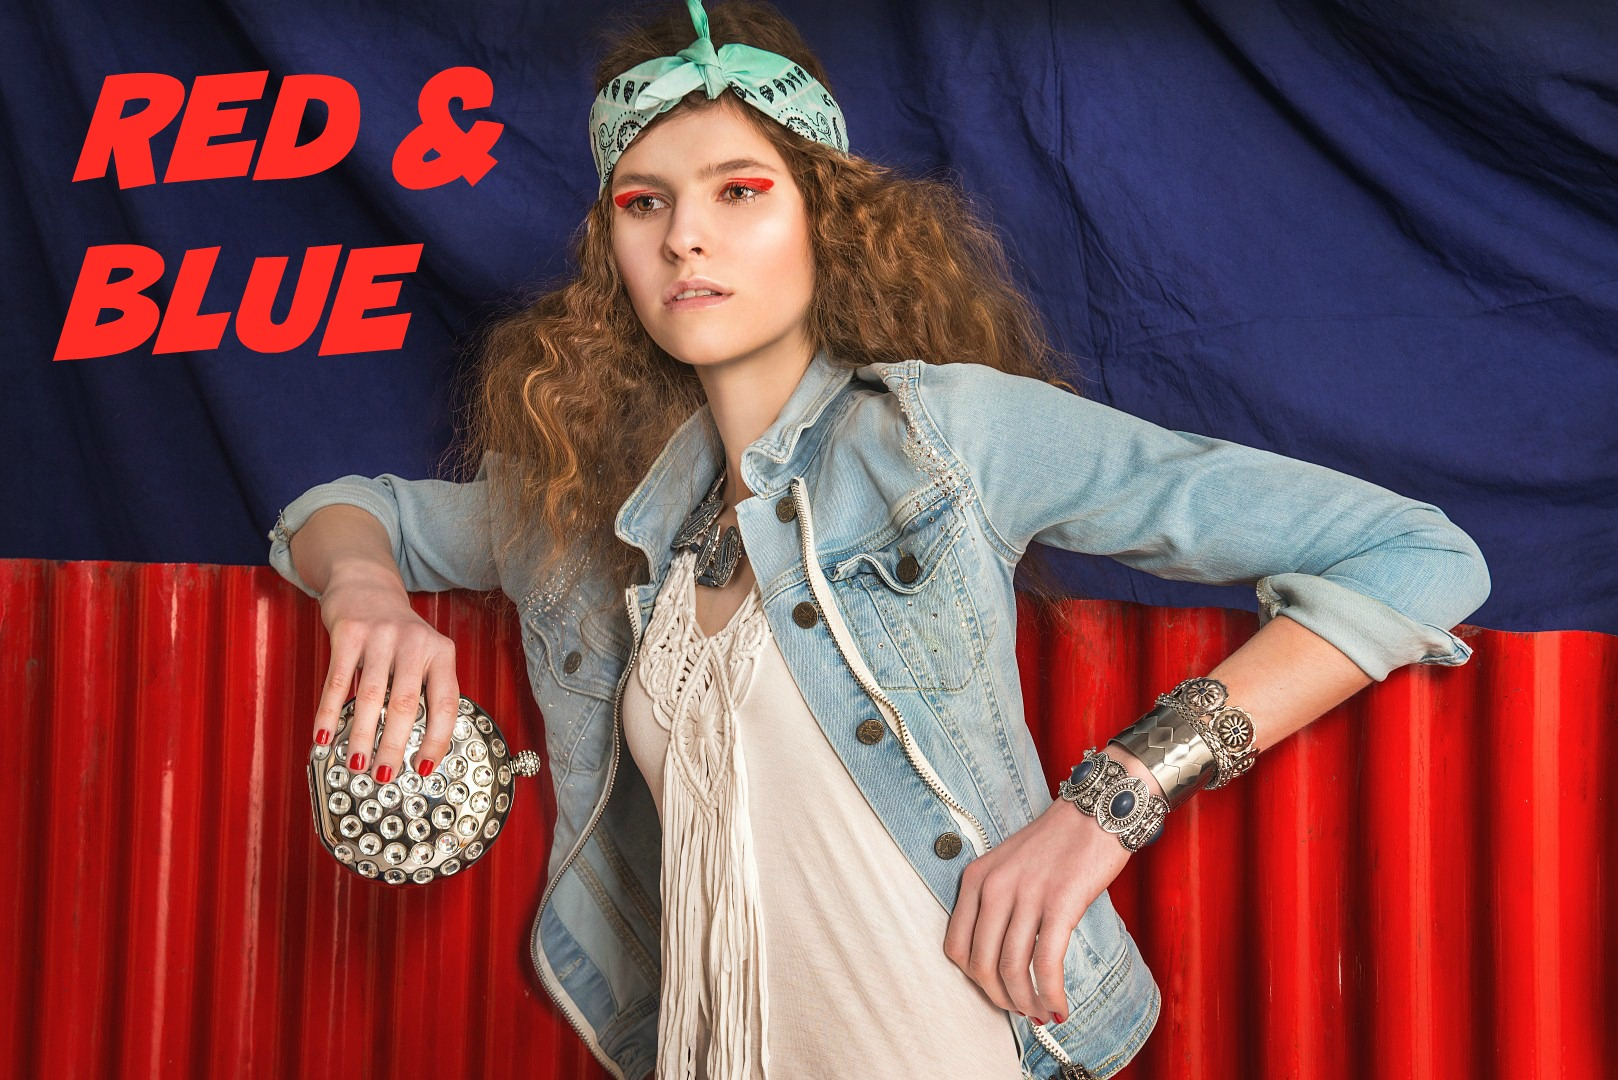 RED AND BLUE - editorial - minden-mas, editorial, ujdonsagok -